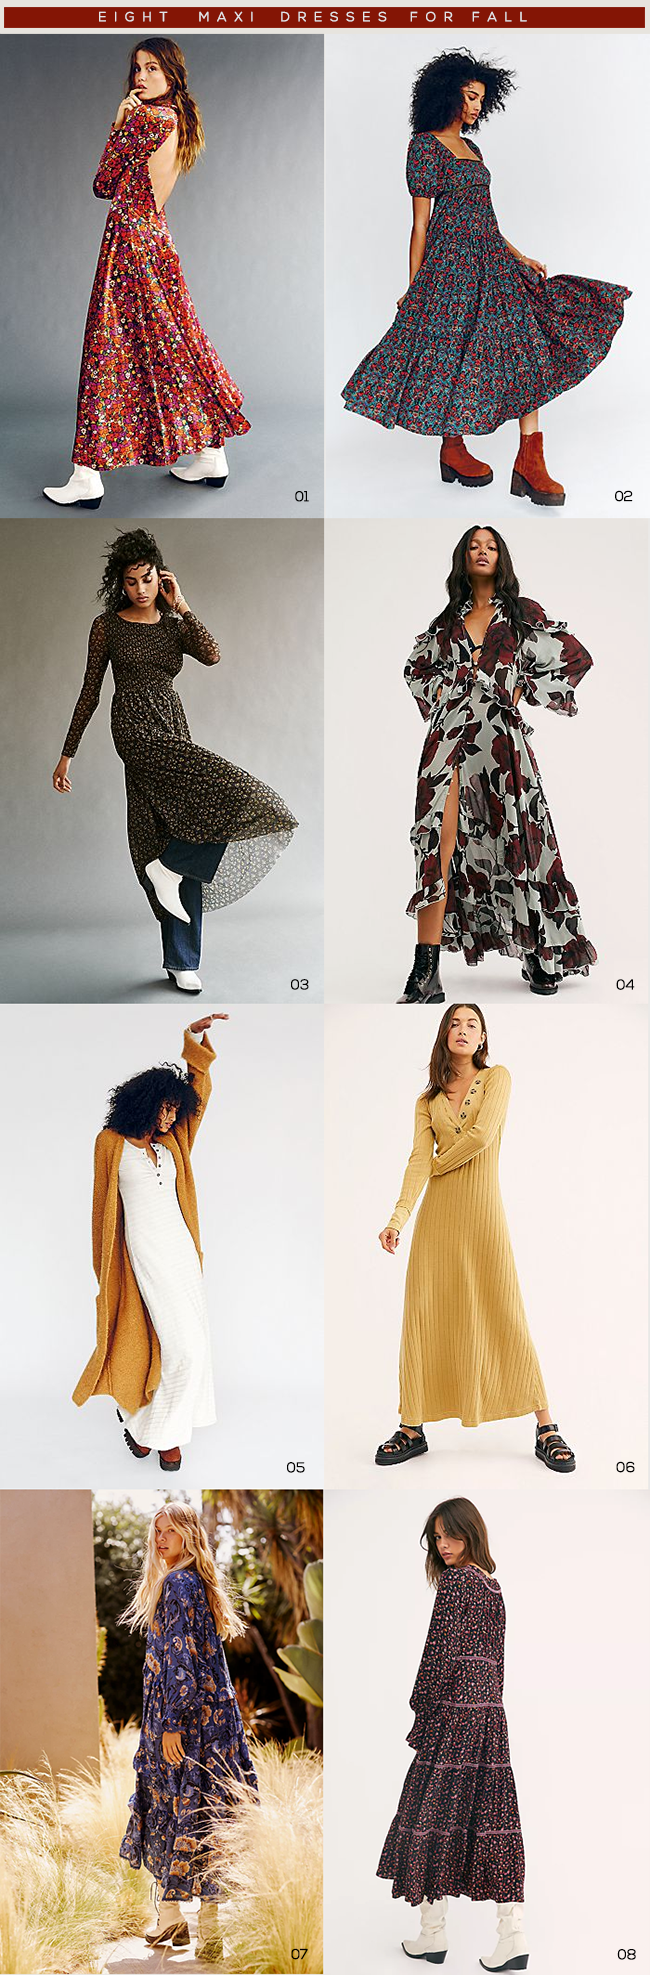 8 Maxi Dress For Fall